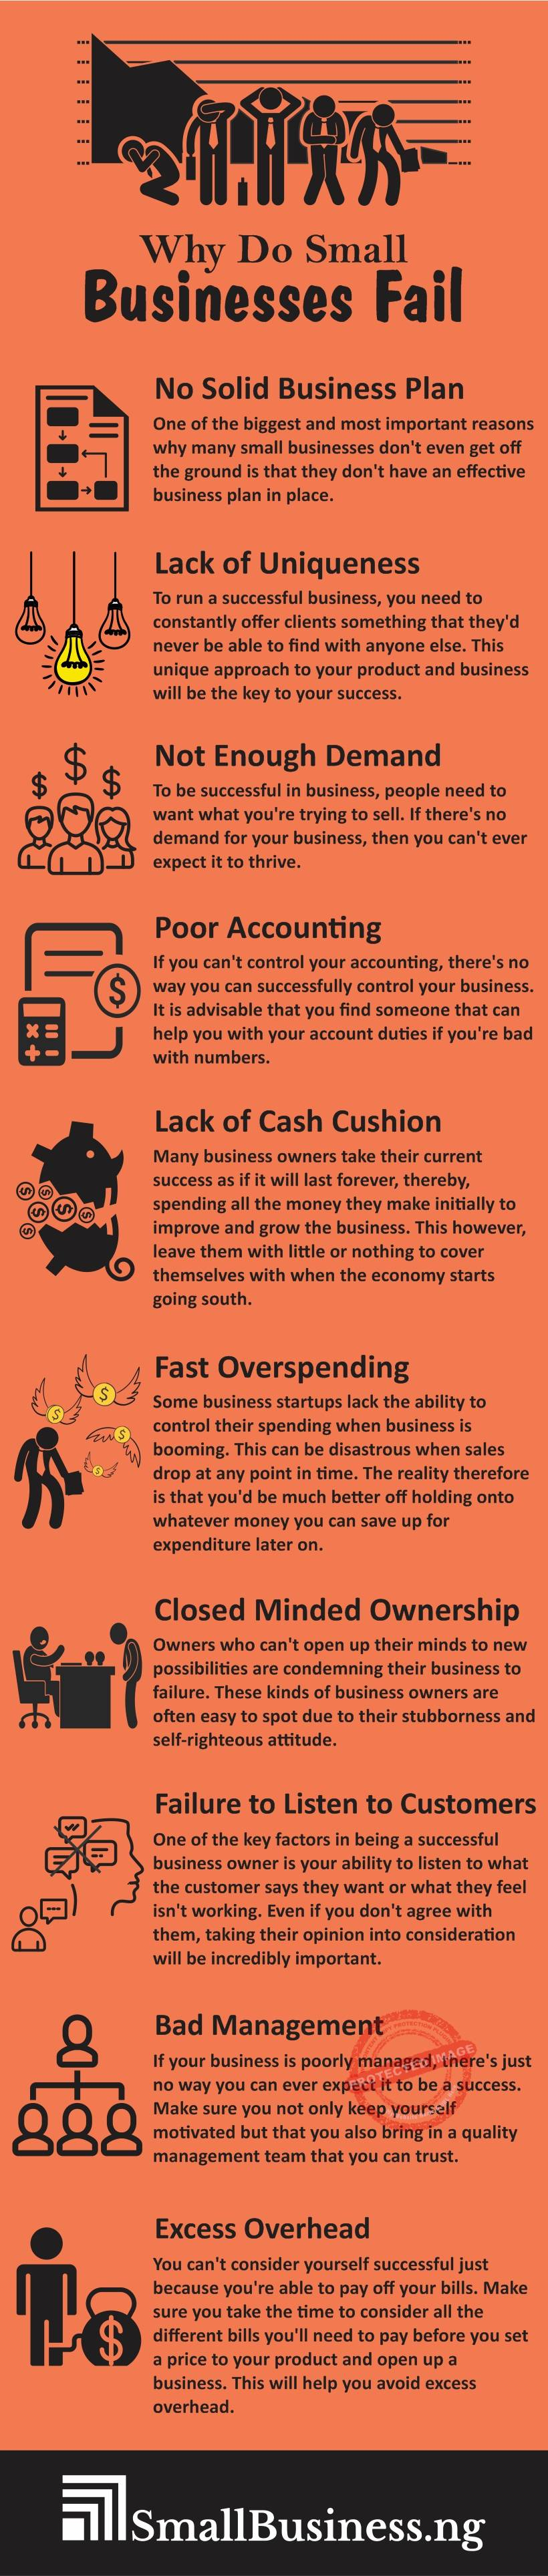 Why do small businesses fail infographic